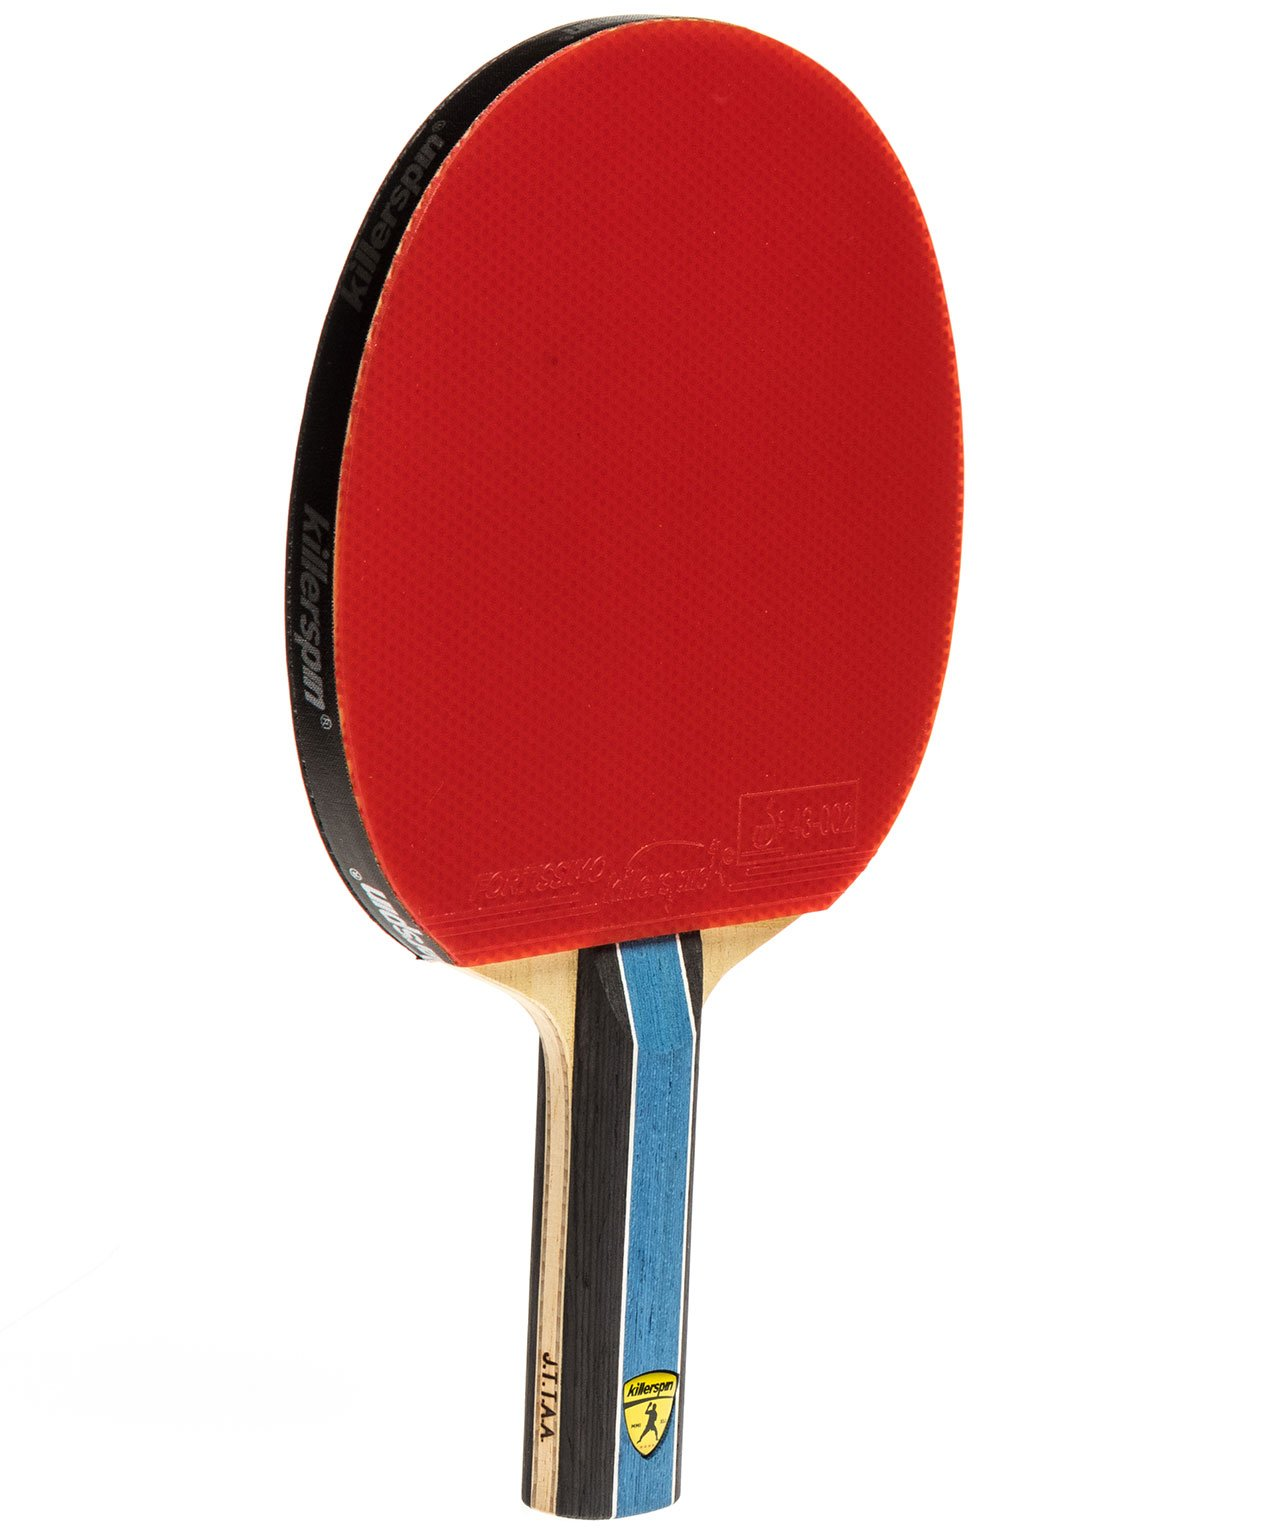 Killerspin Ping Pong Paddle Kido 5A RTG Premium - Straight Red Rubber